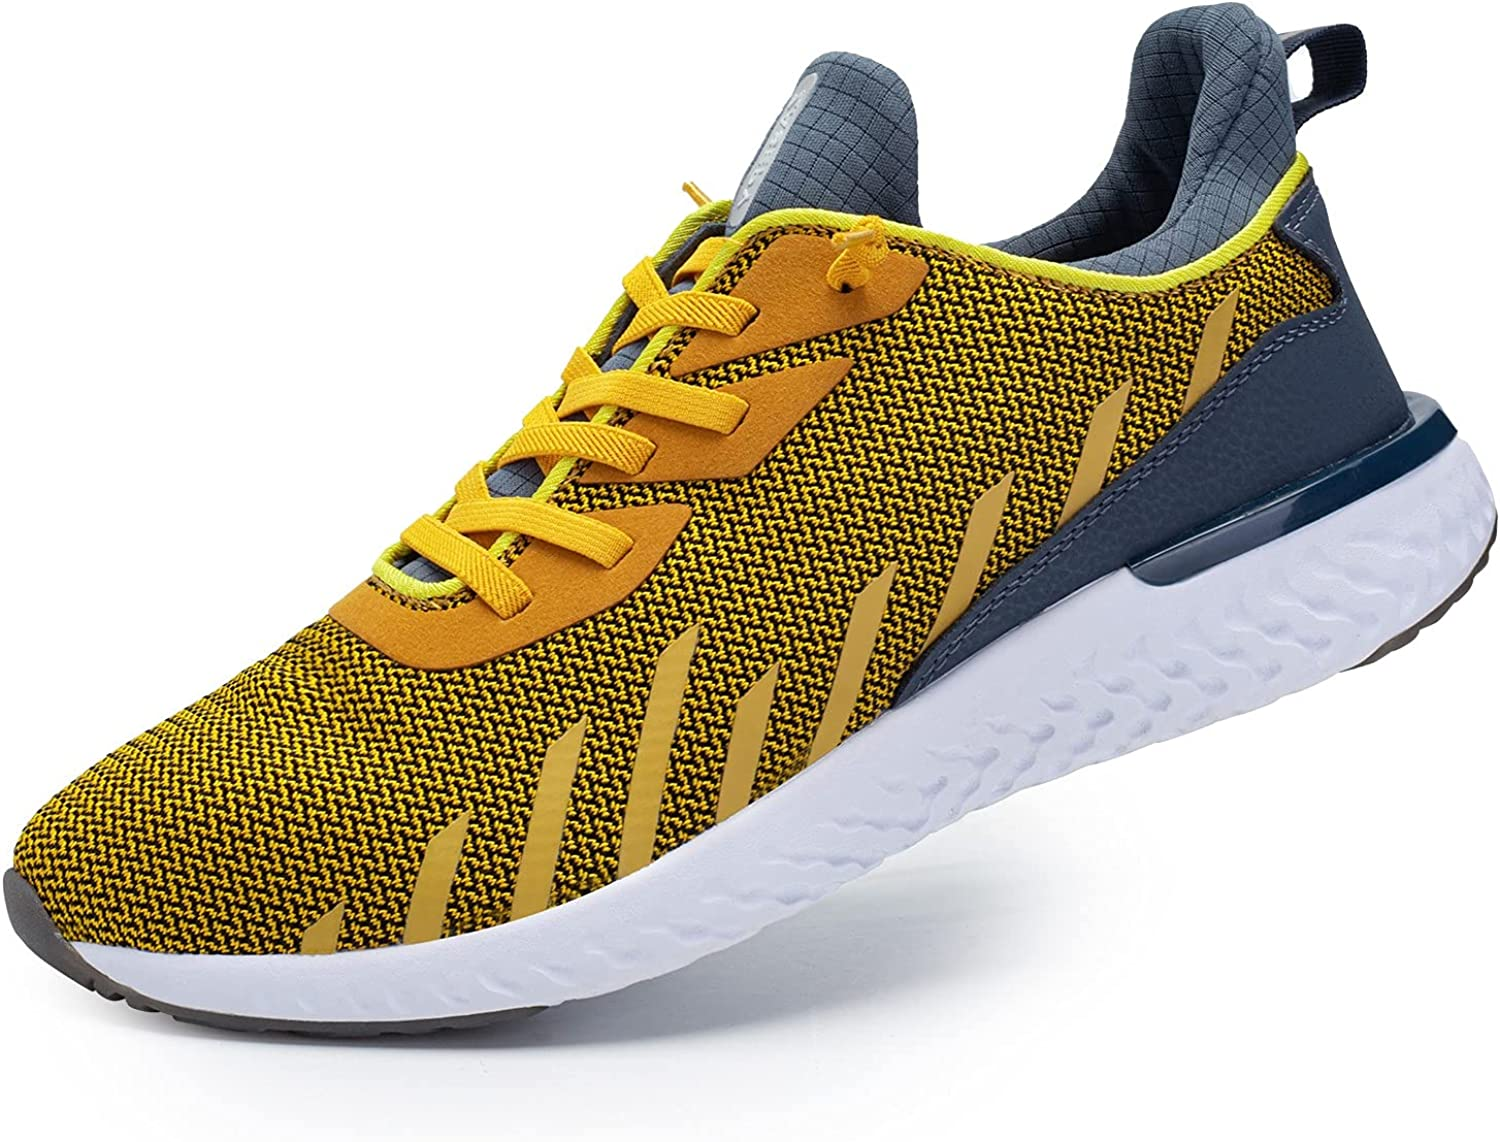 ZASEPY Men's Dealing full price 70% OFF Outlet reduction Lightweight Mesh Breathable Walking Shoes - Casual